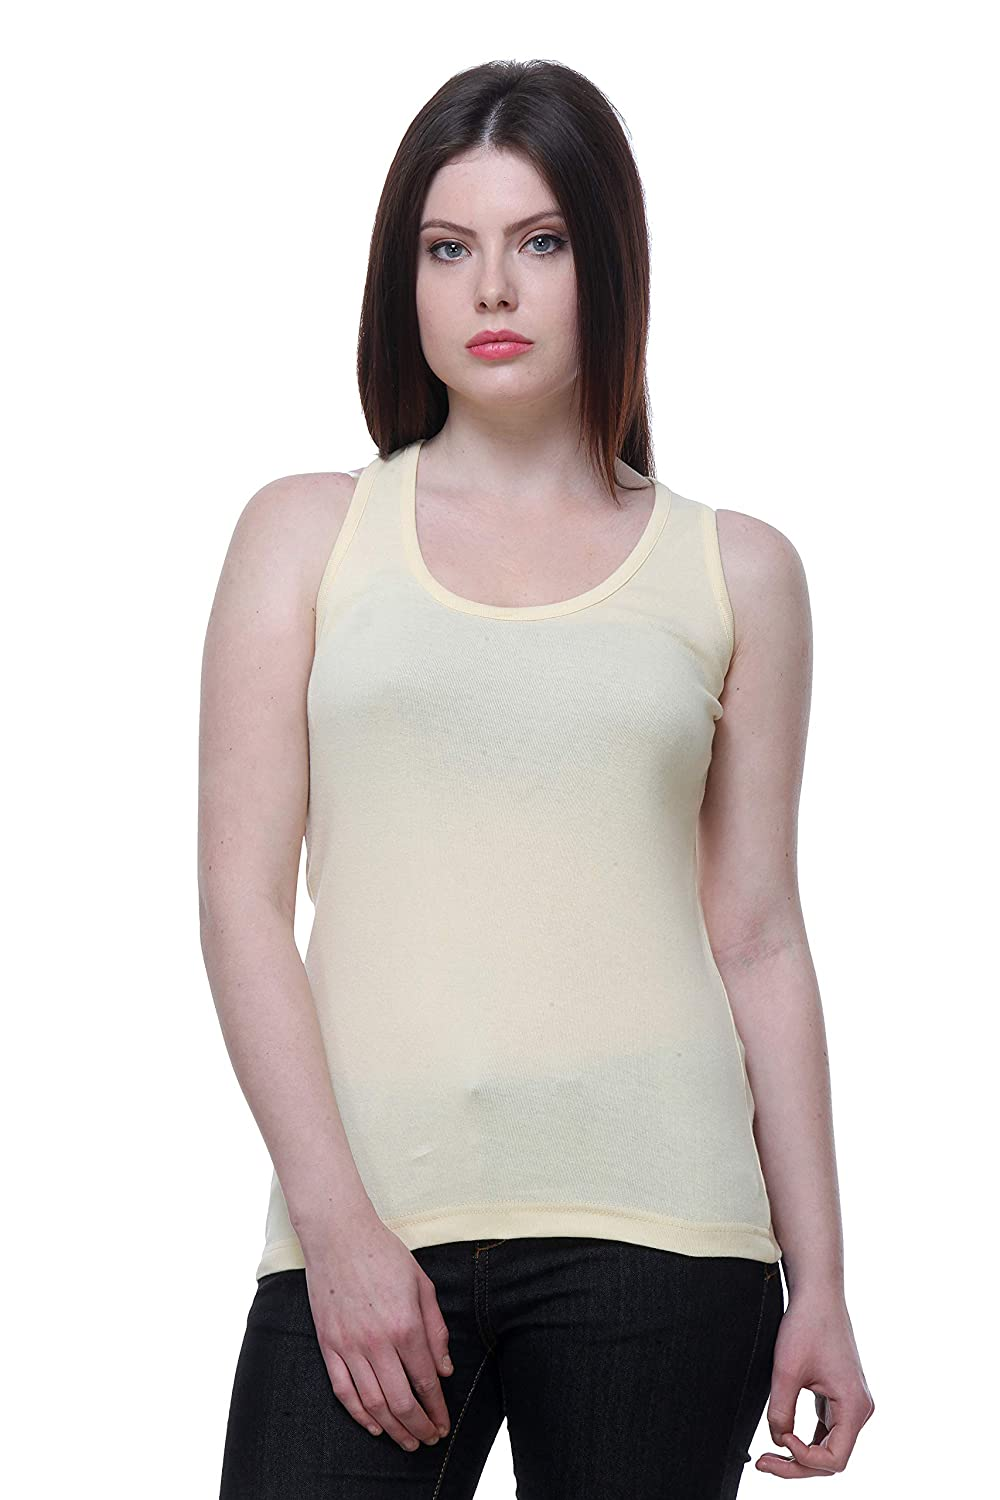 Indistar Tank Tops for Women Racerback Tanks Pack of 5